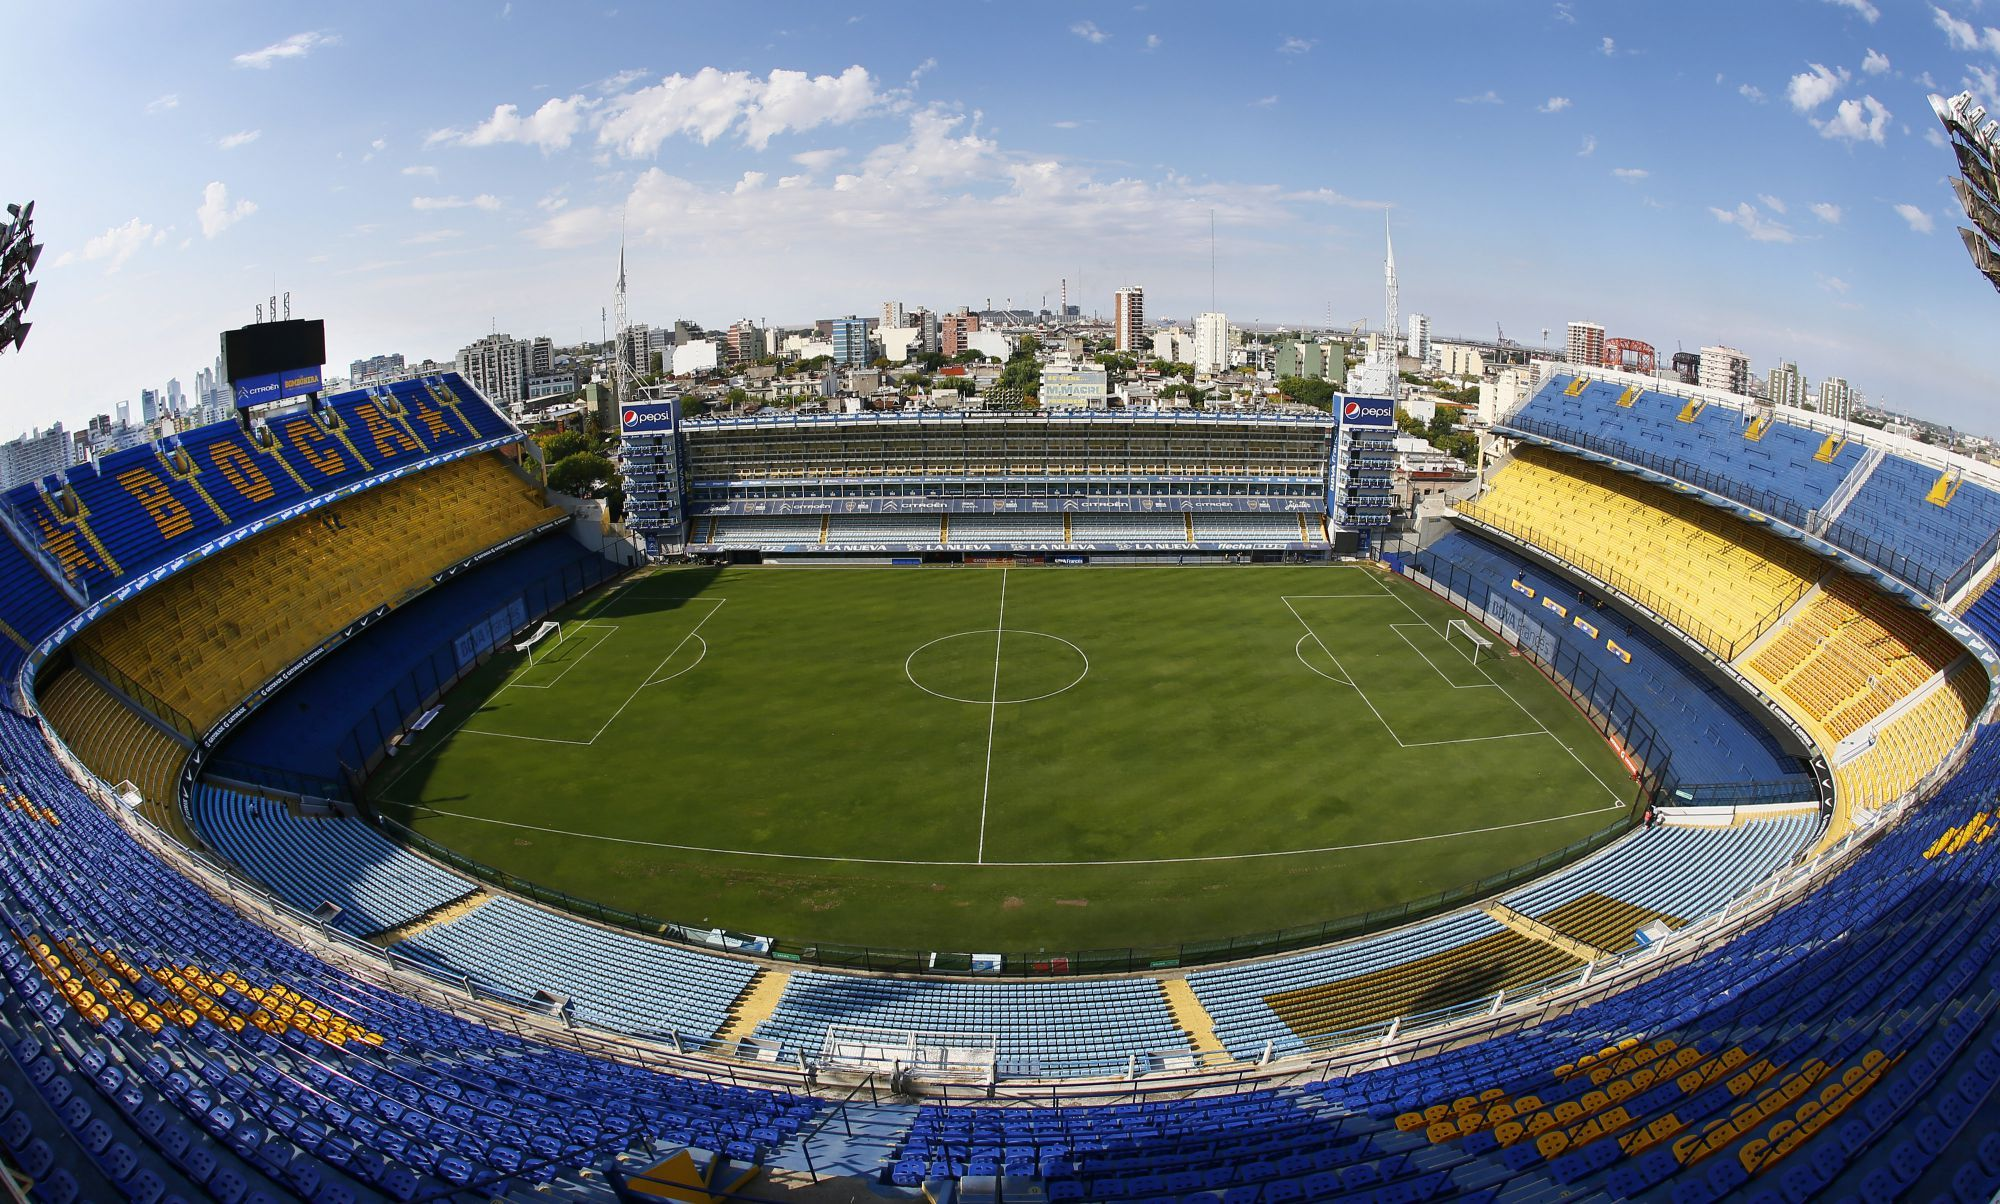 Boca Juniors: #Estadio La Bombonera #CABJ Boca Juniors